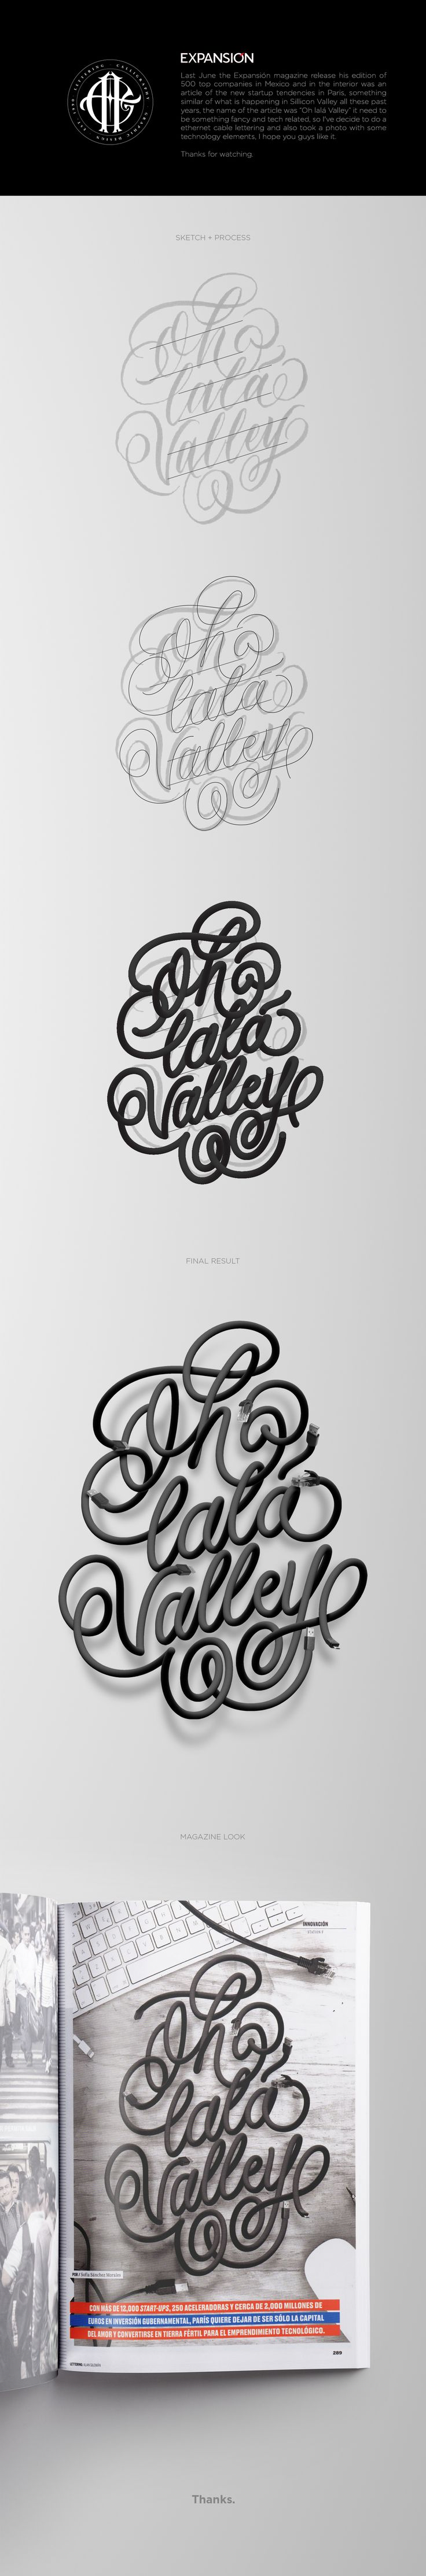 Oh lalá Valley on Behance